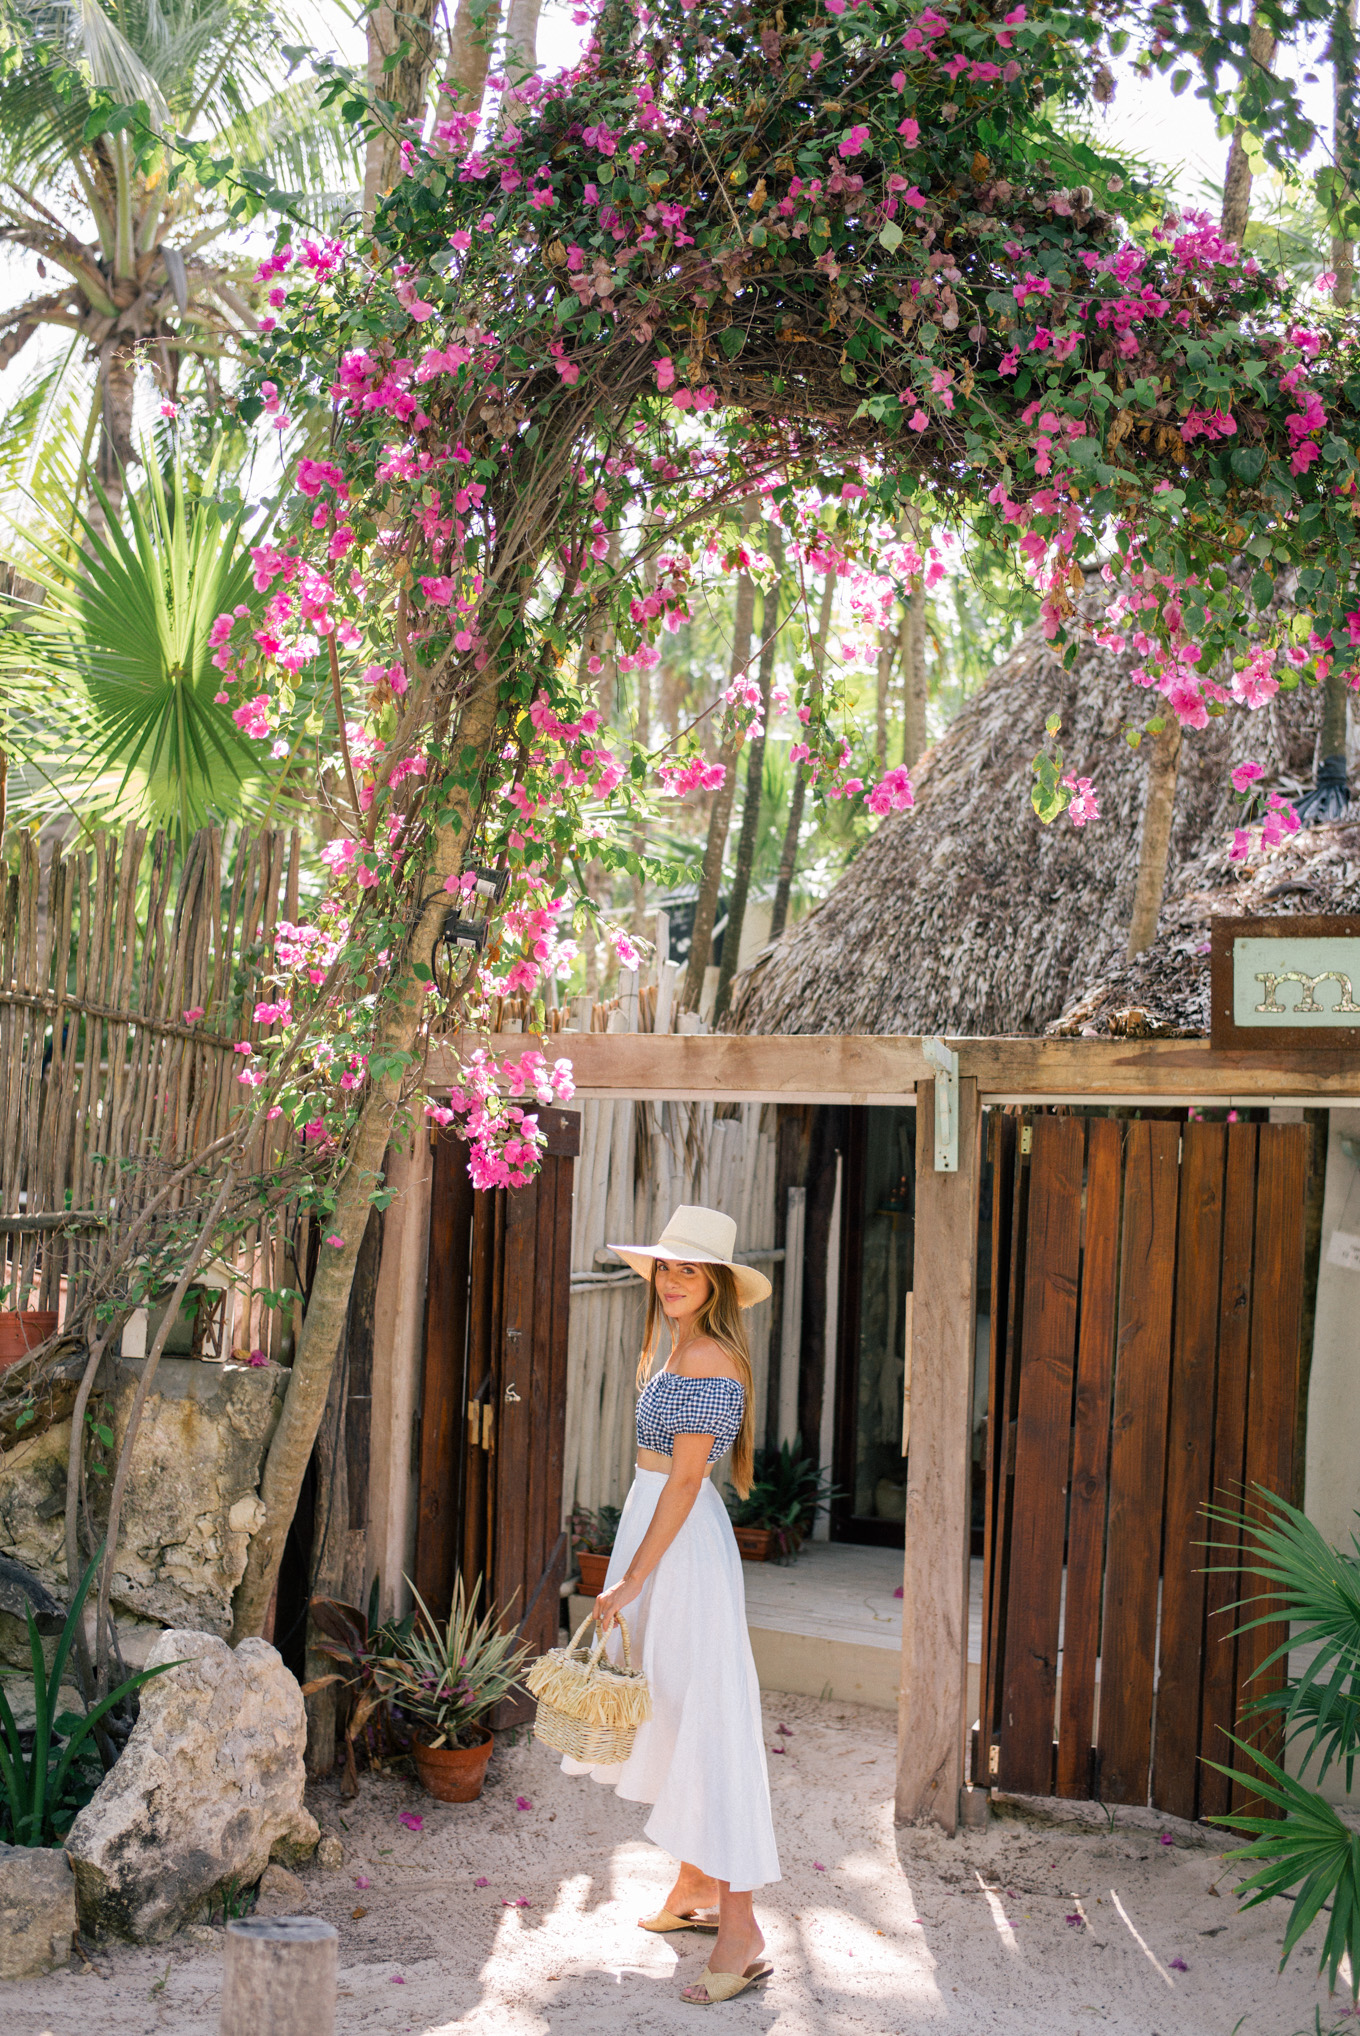 gmg-tulum-guide-1000205